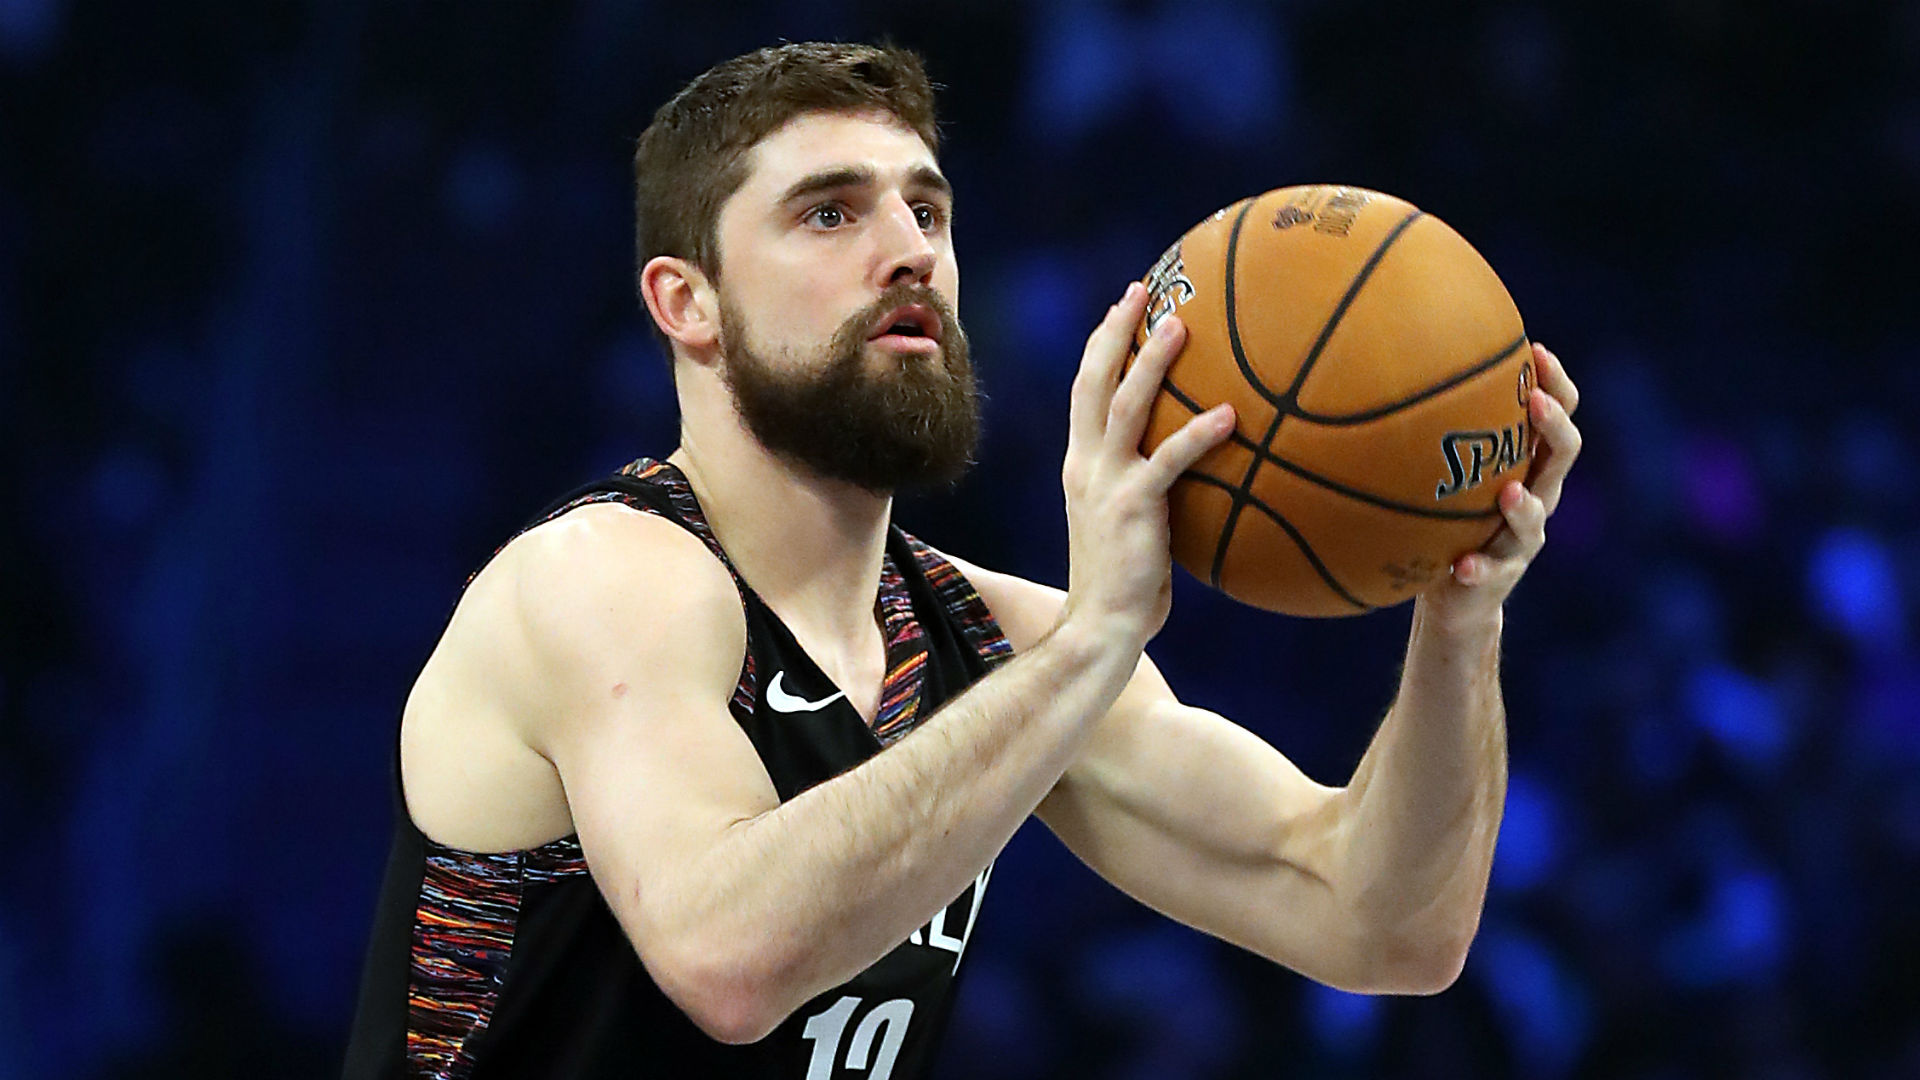 NBA 3-point Contest 2020 live updates, highlights, results from All-Star weekend